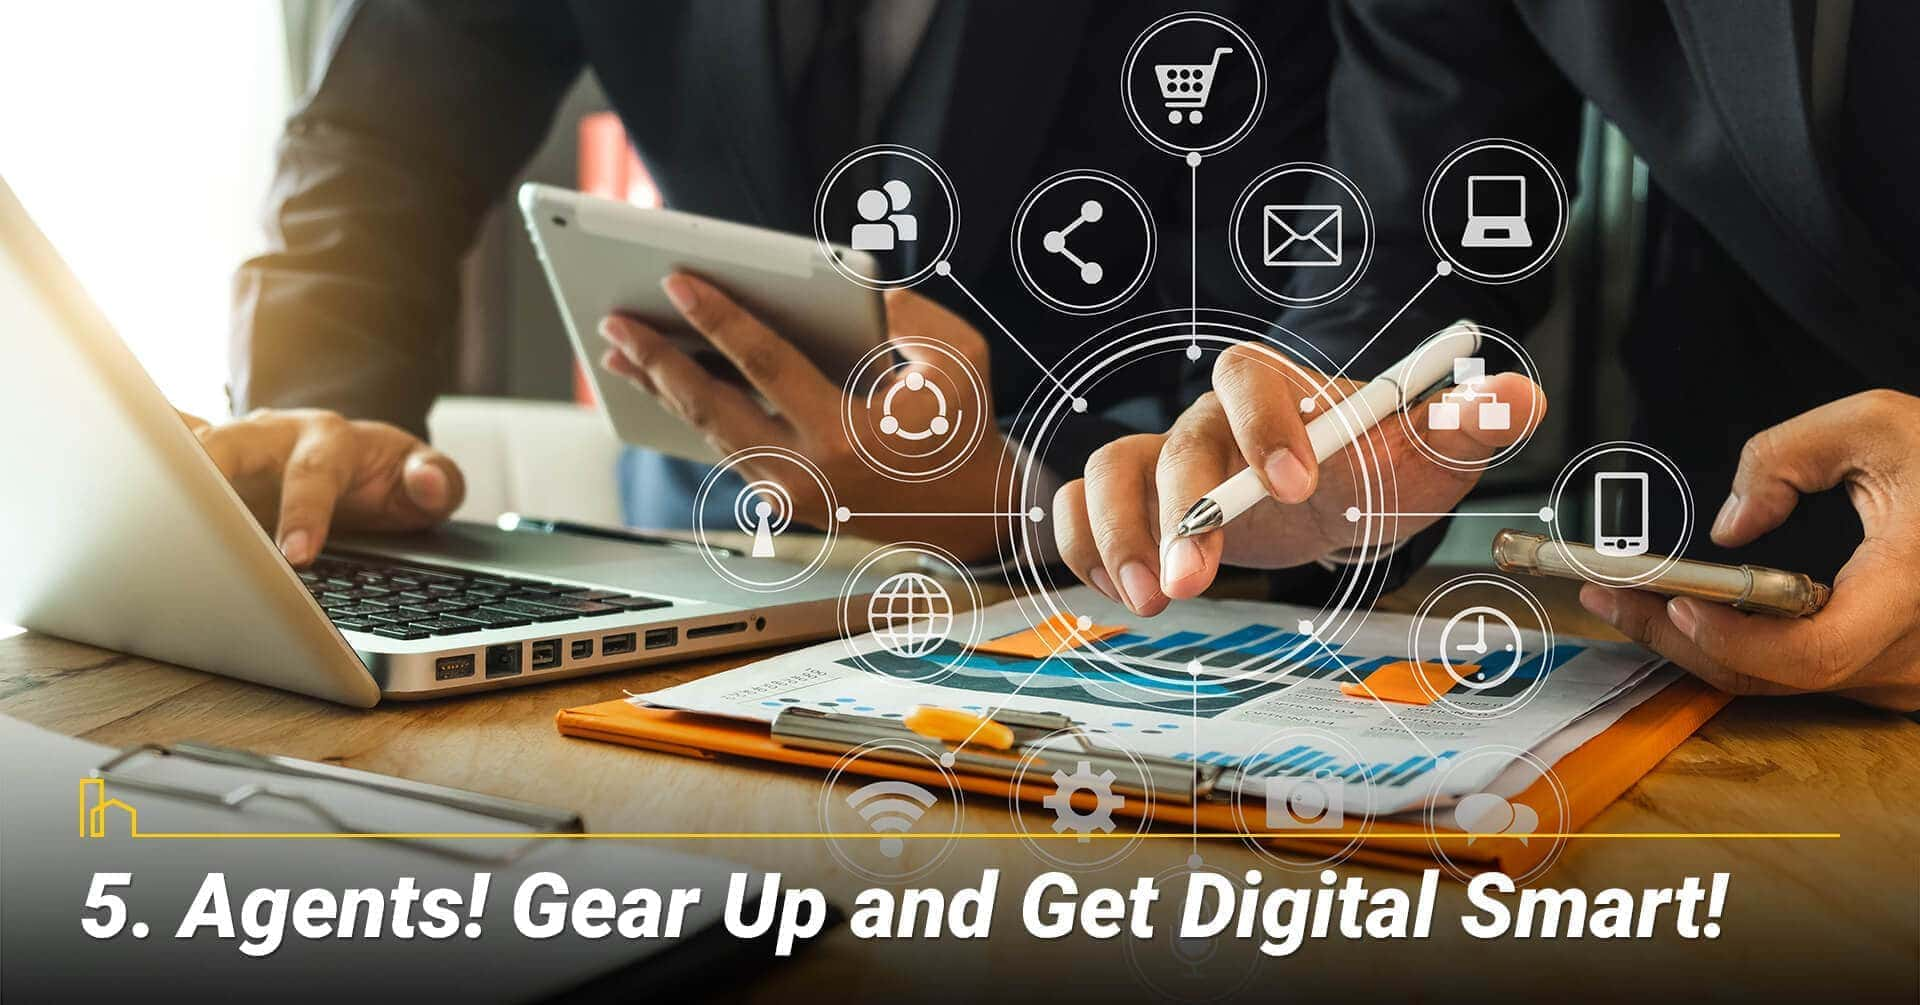 Agents! Gear Up and Get Digital Smart!